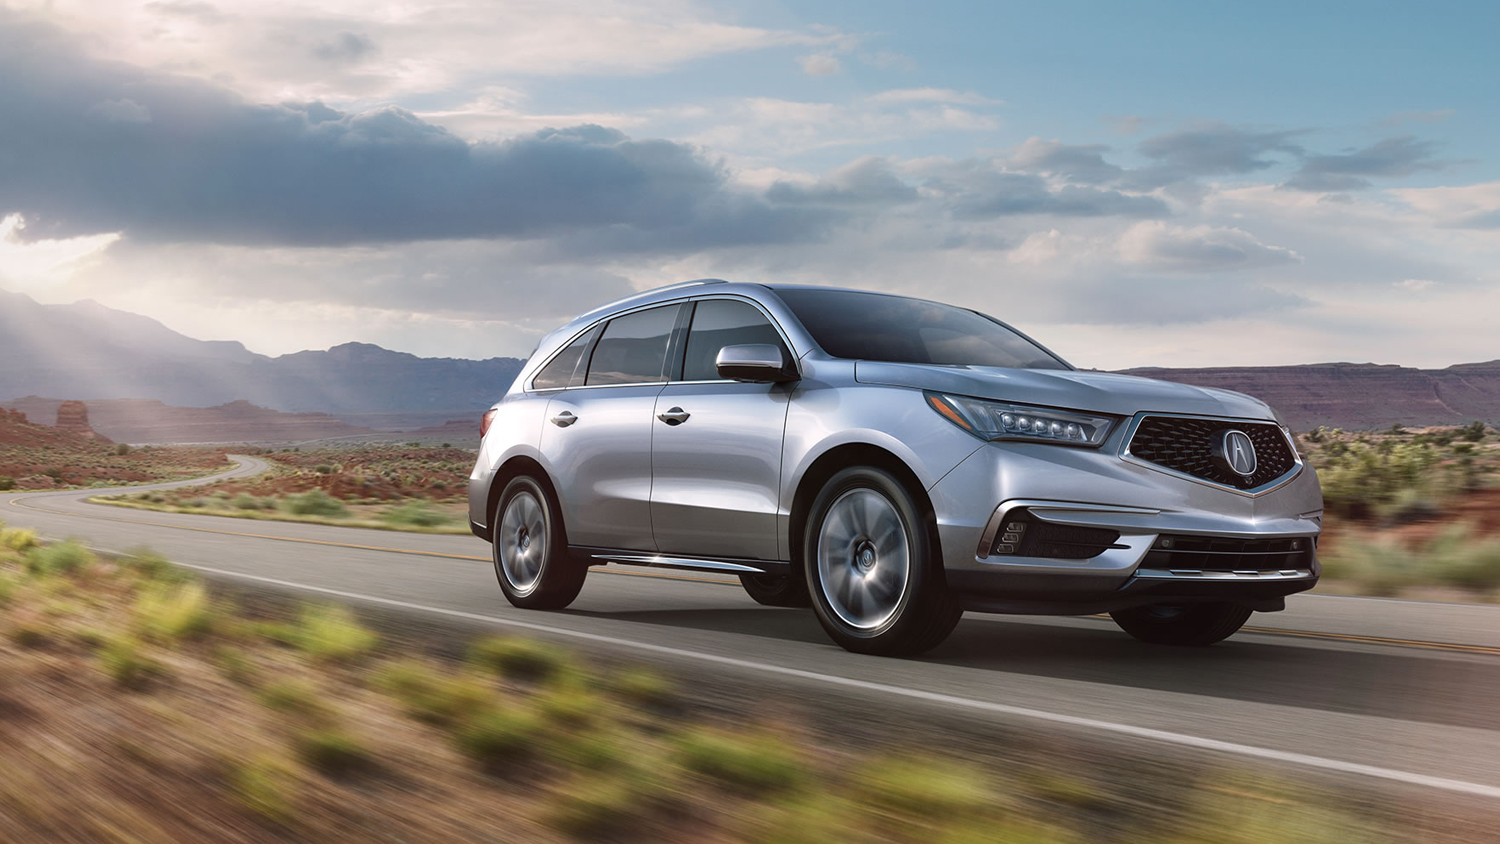 2017 Acura MDX Exterior Front Drive